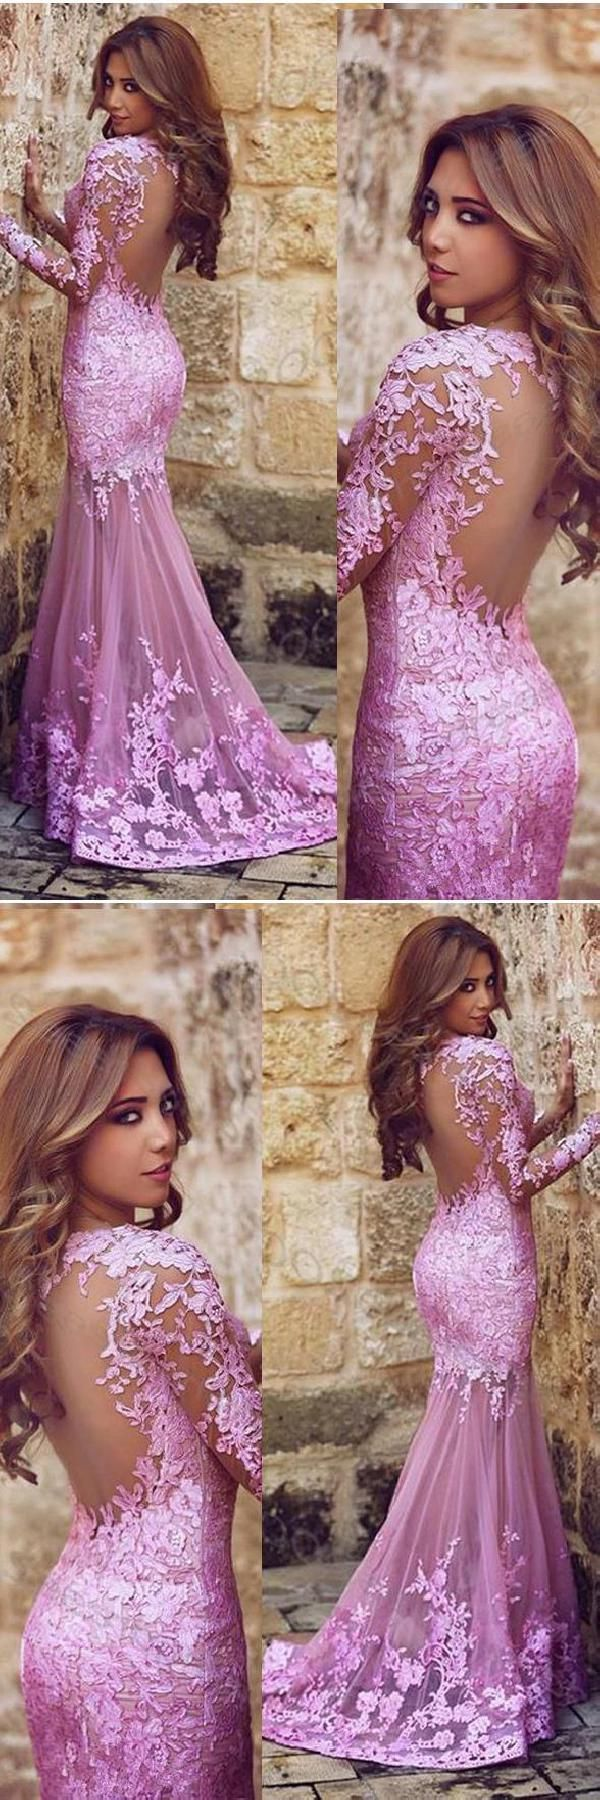 Customized light lace prom dresses mermaid prom dresses pink prom